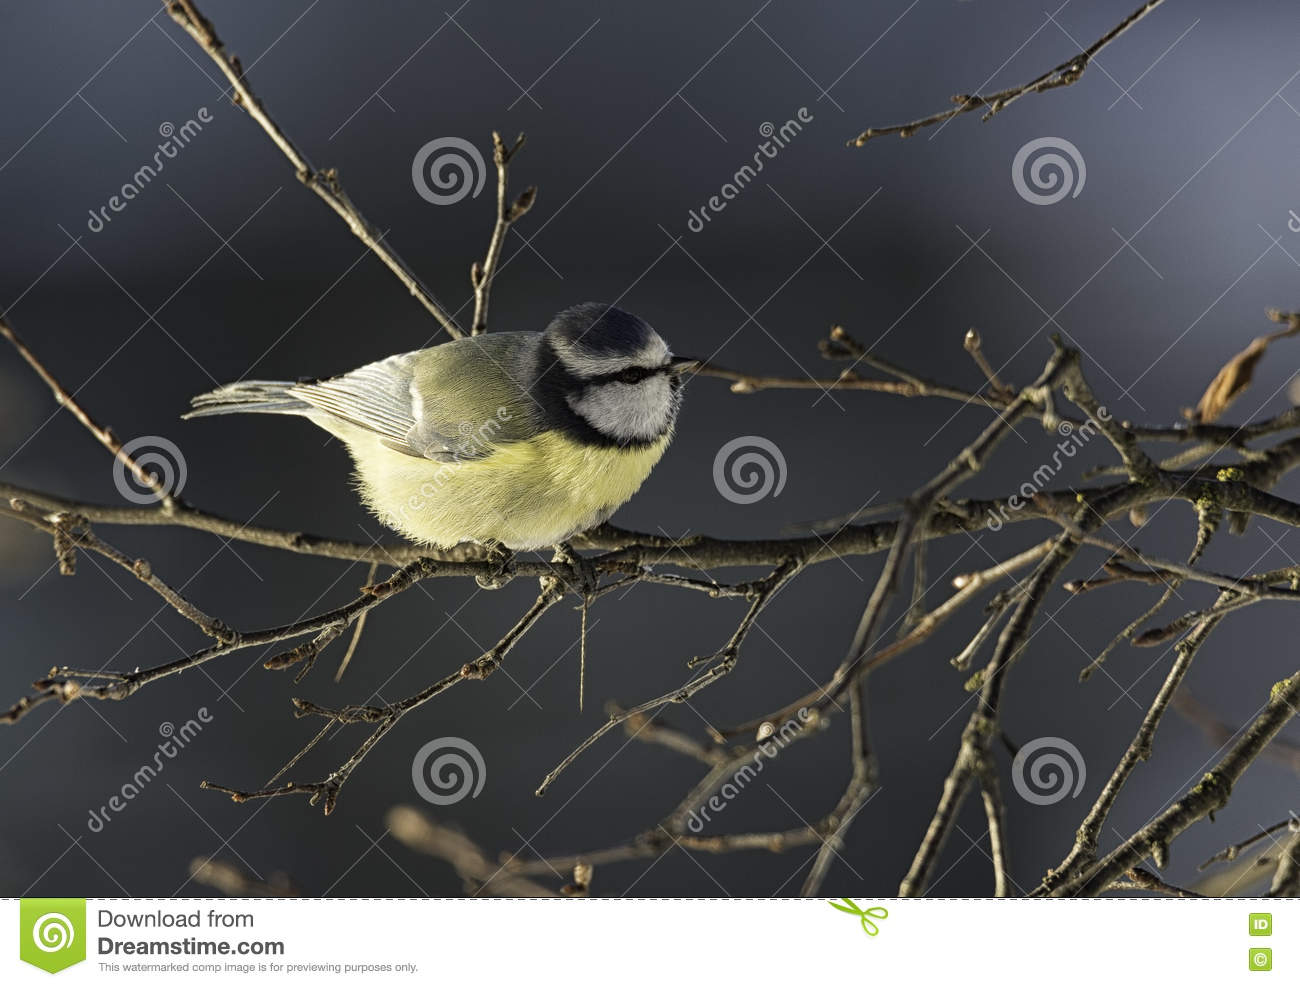 Eurasian Blue Tit clipart #10, Download drawings